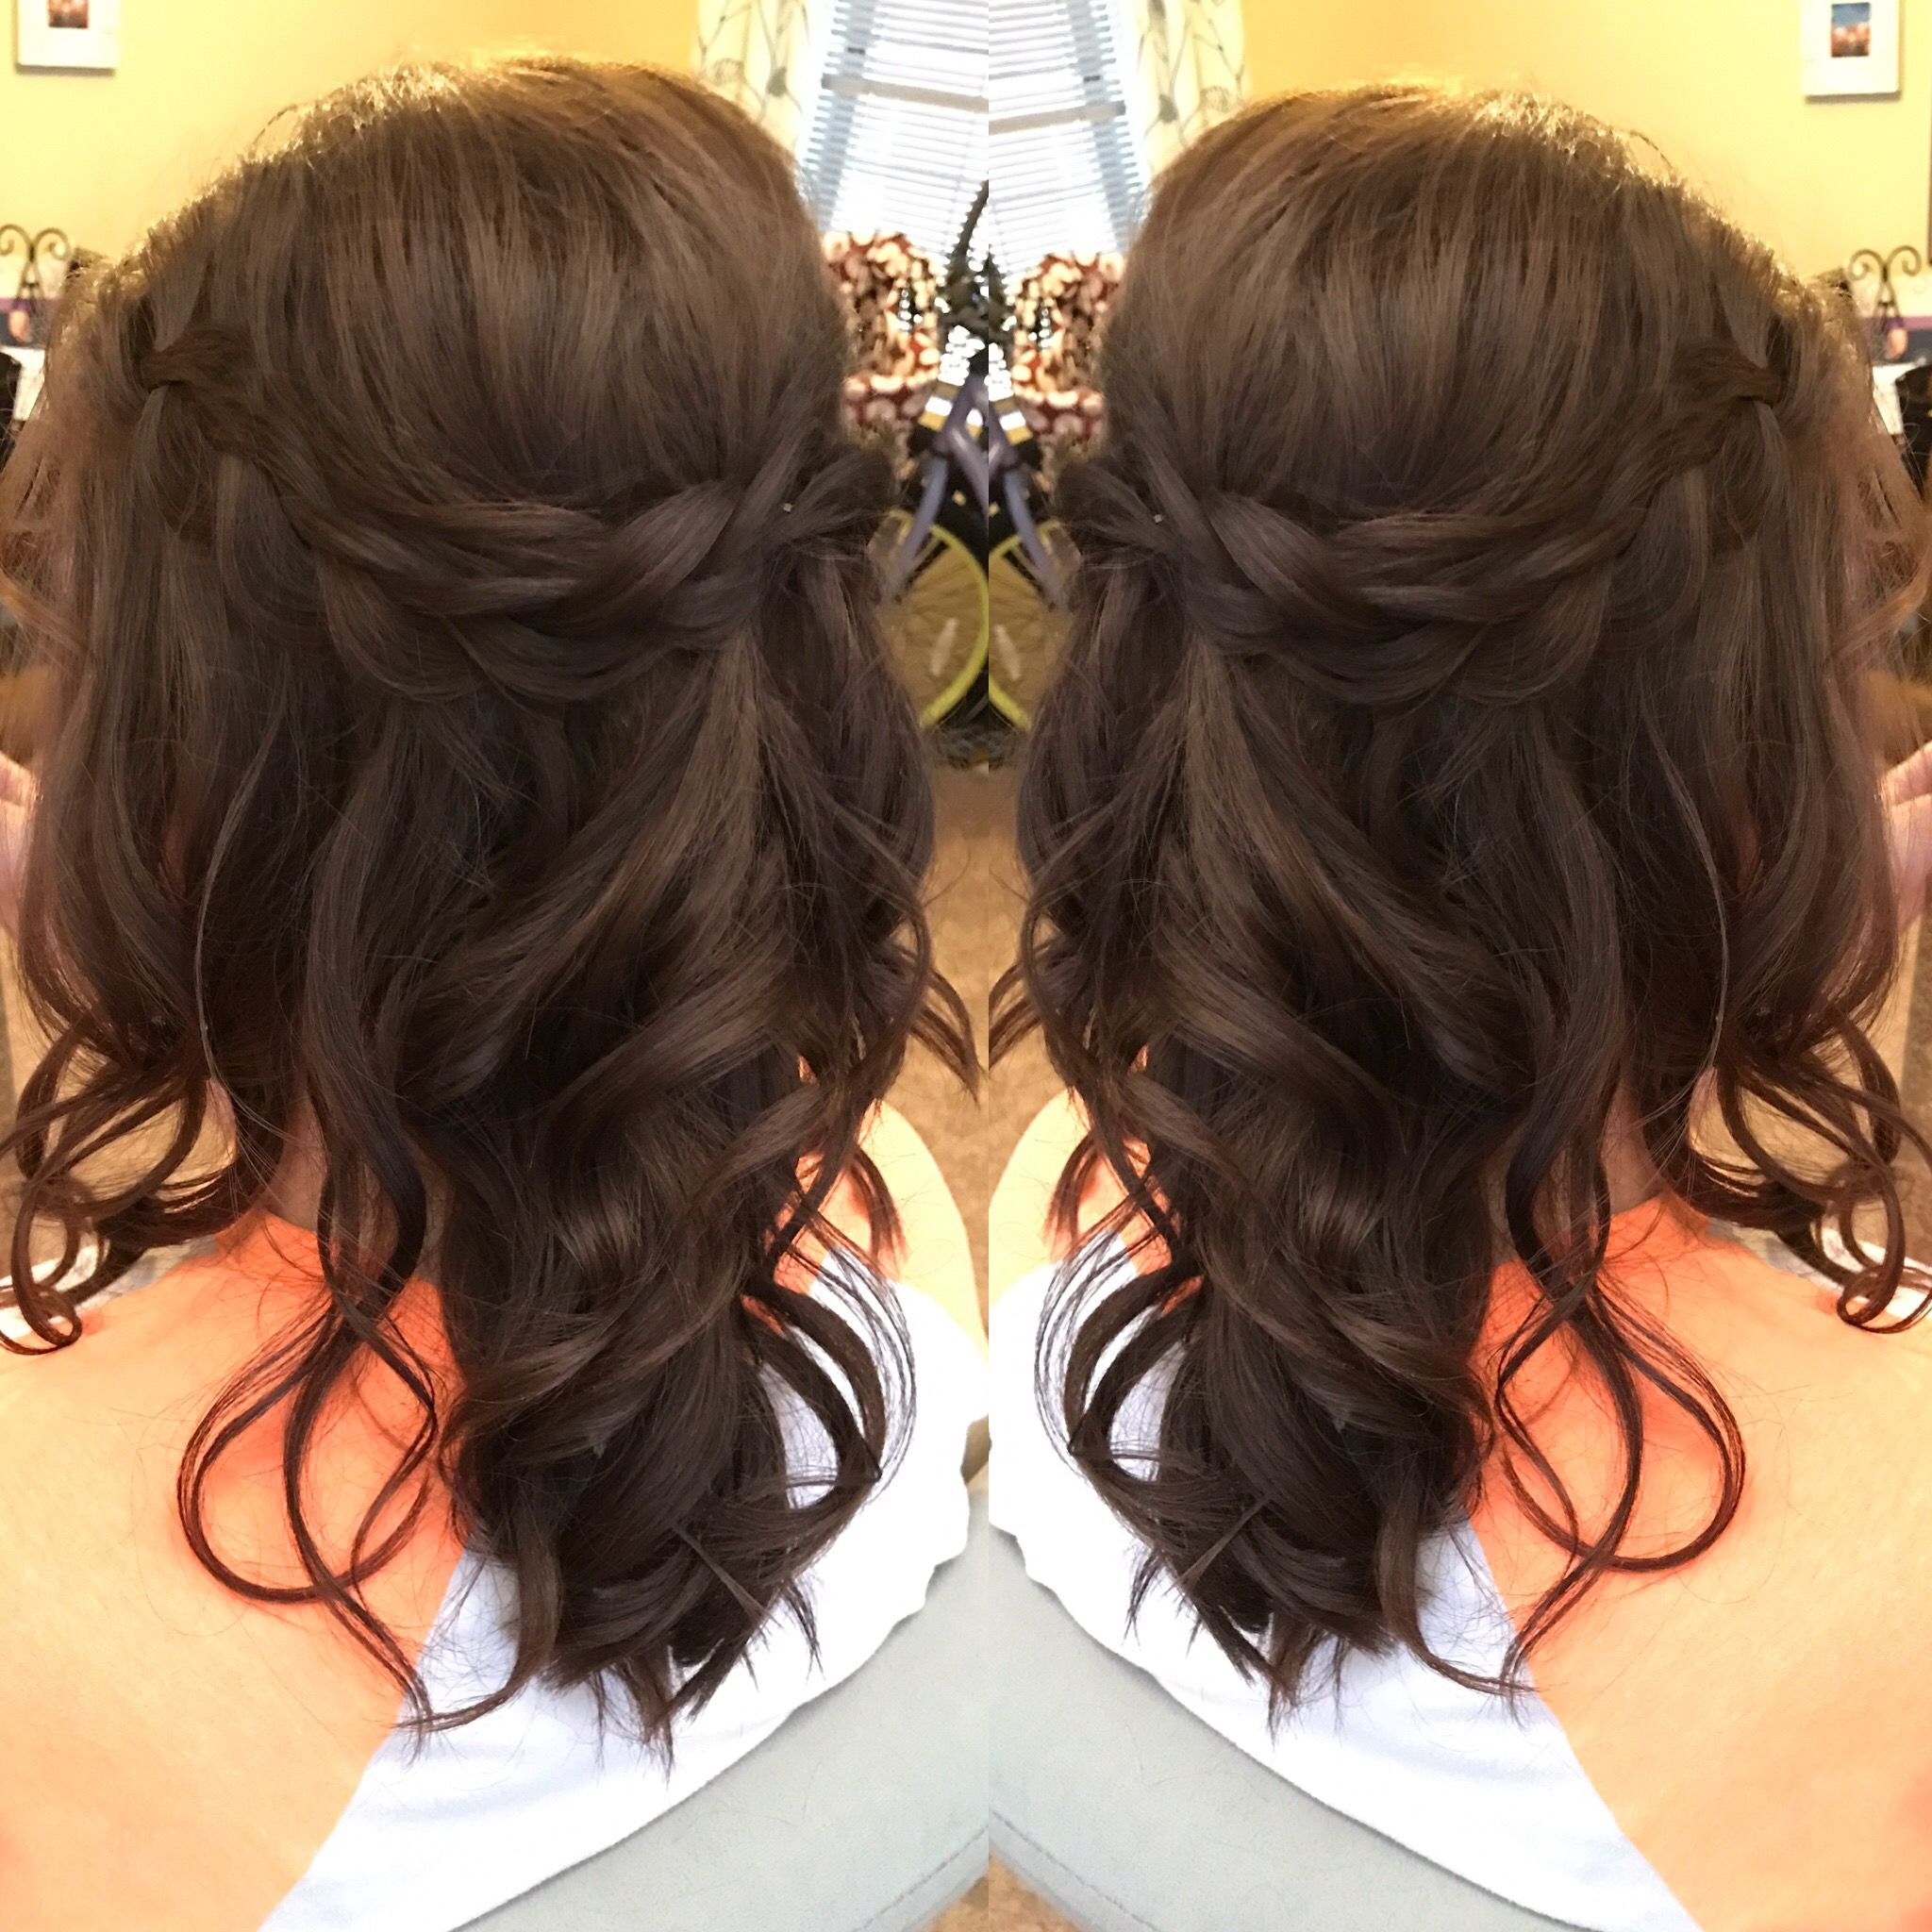 Loose curls updo half up half down hairstyle brunette